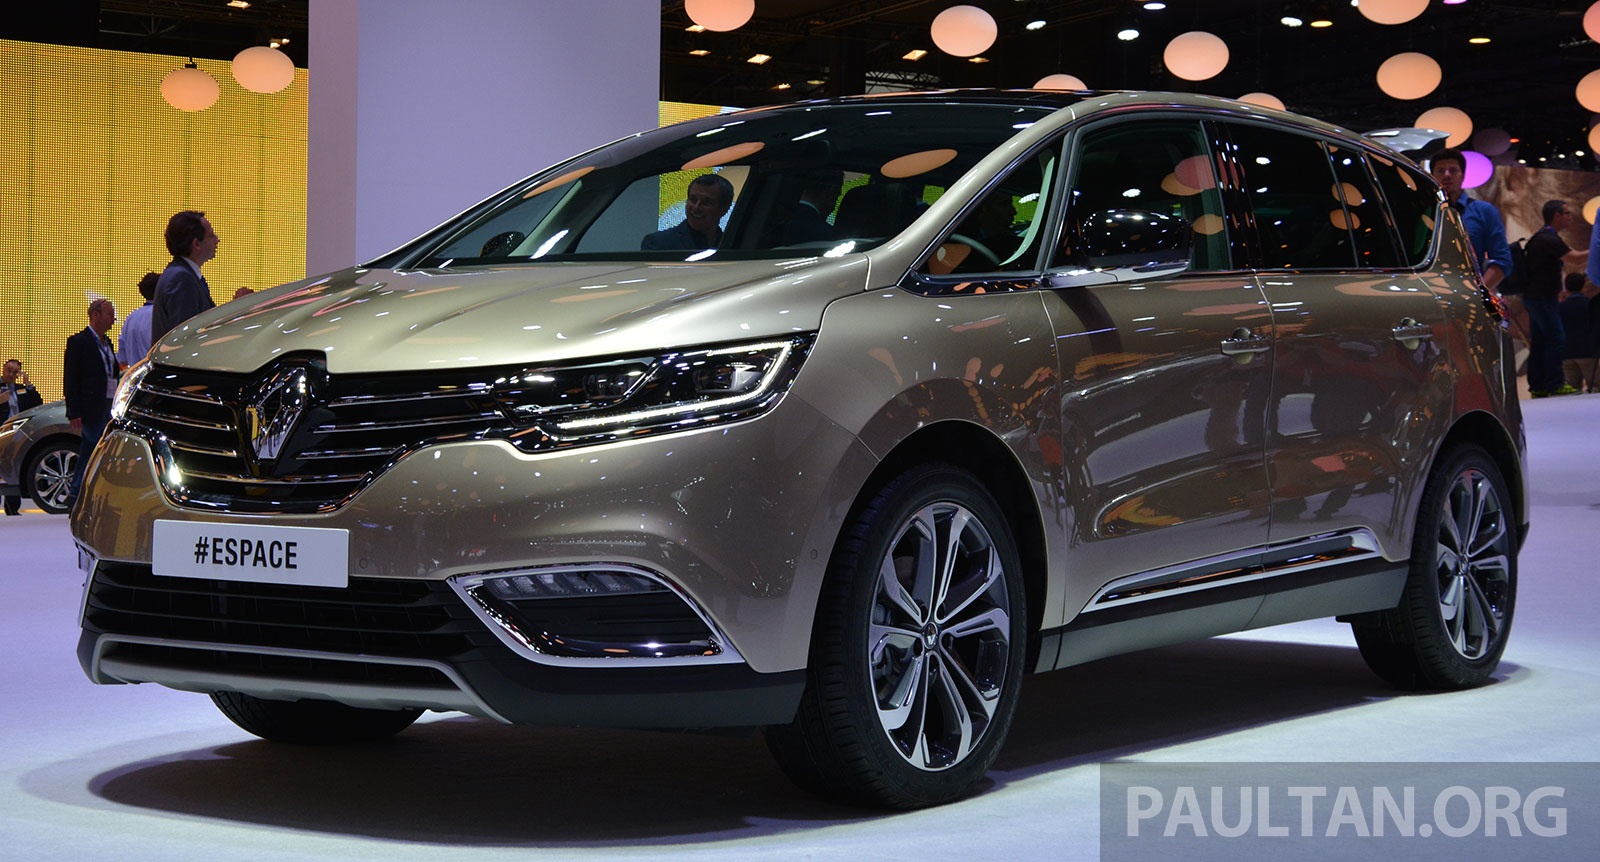 paris 2014 new renault espace snapped before unveil image. Black Bedroom Furniture Sets. Home Design Ideas